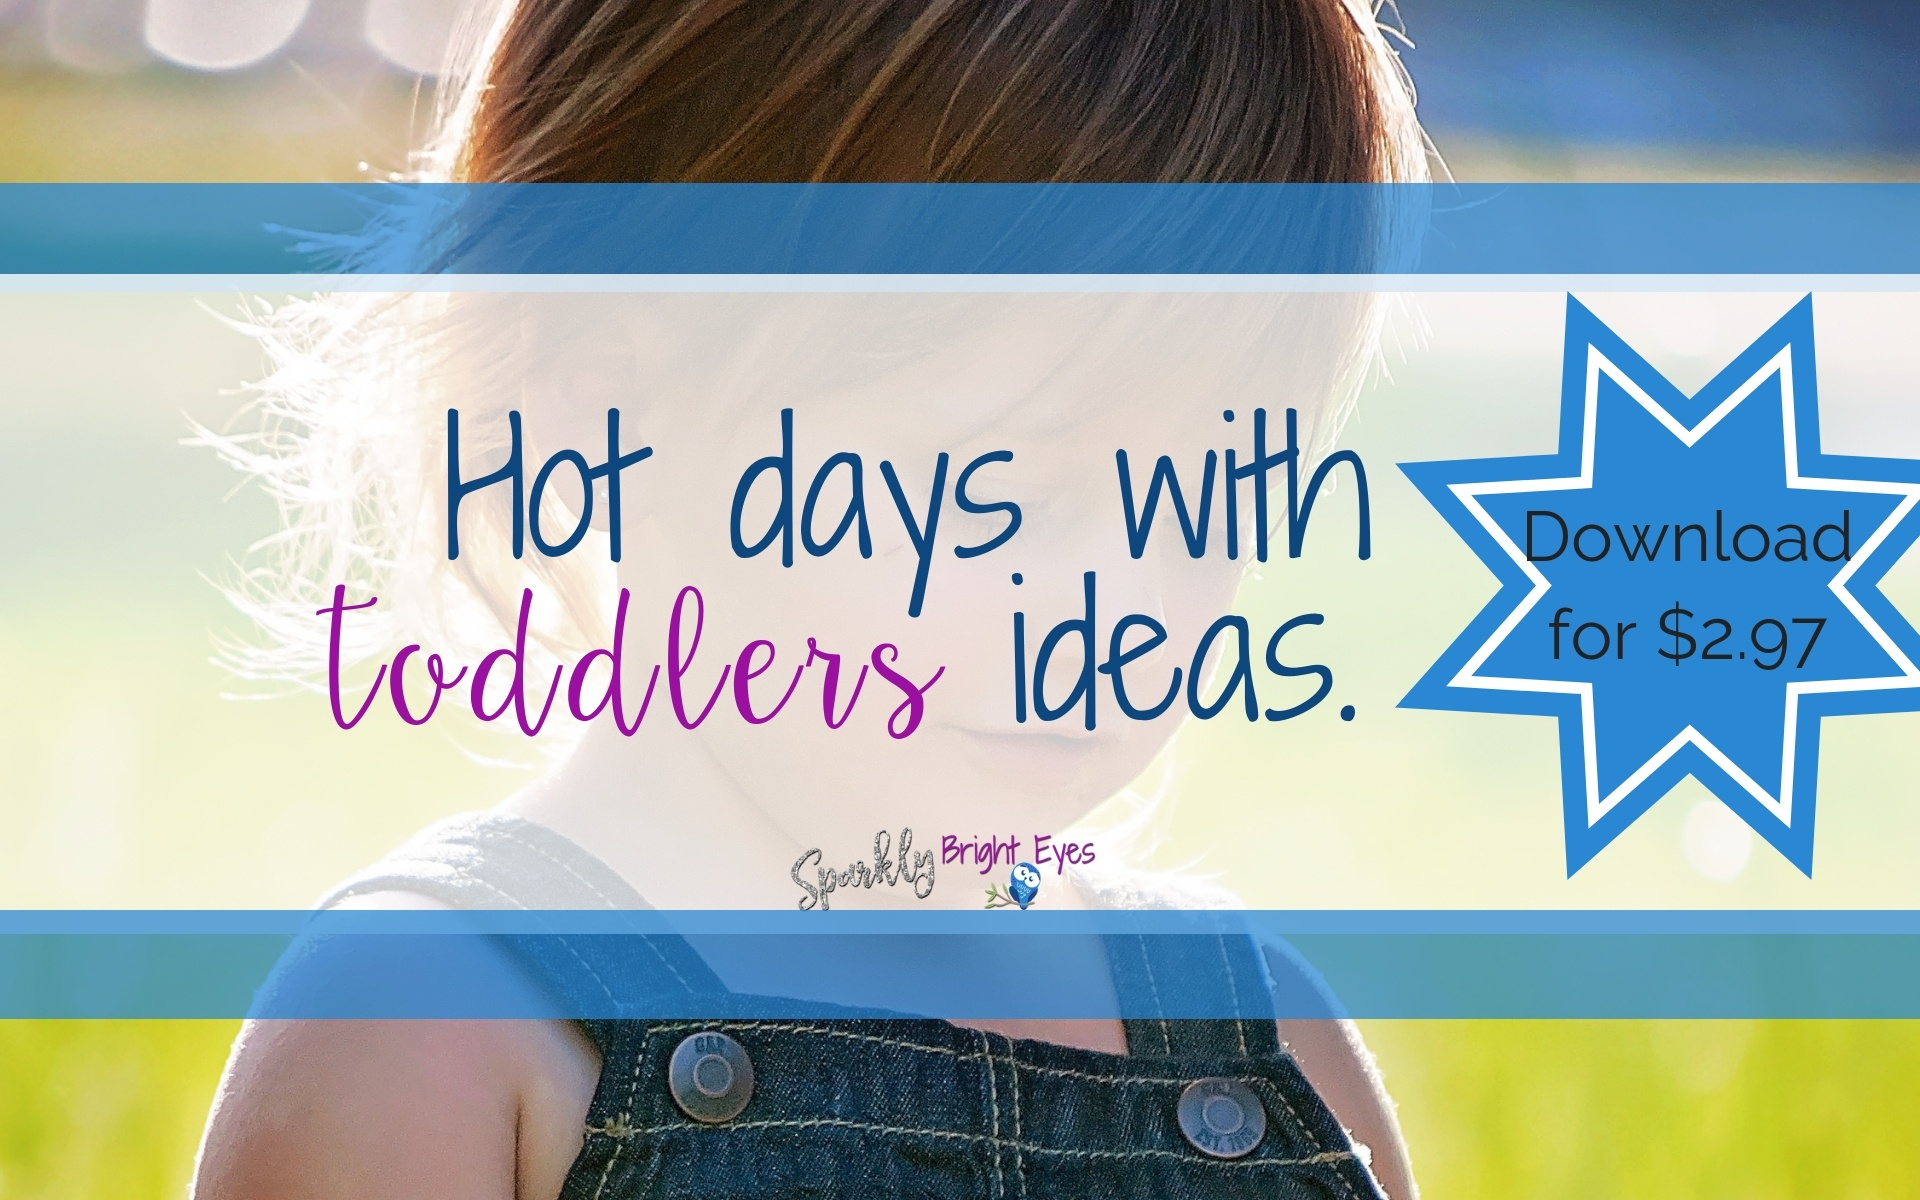 hot days with toddlers ideas download